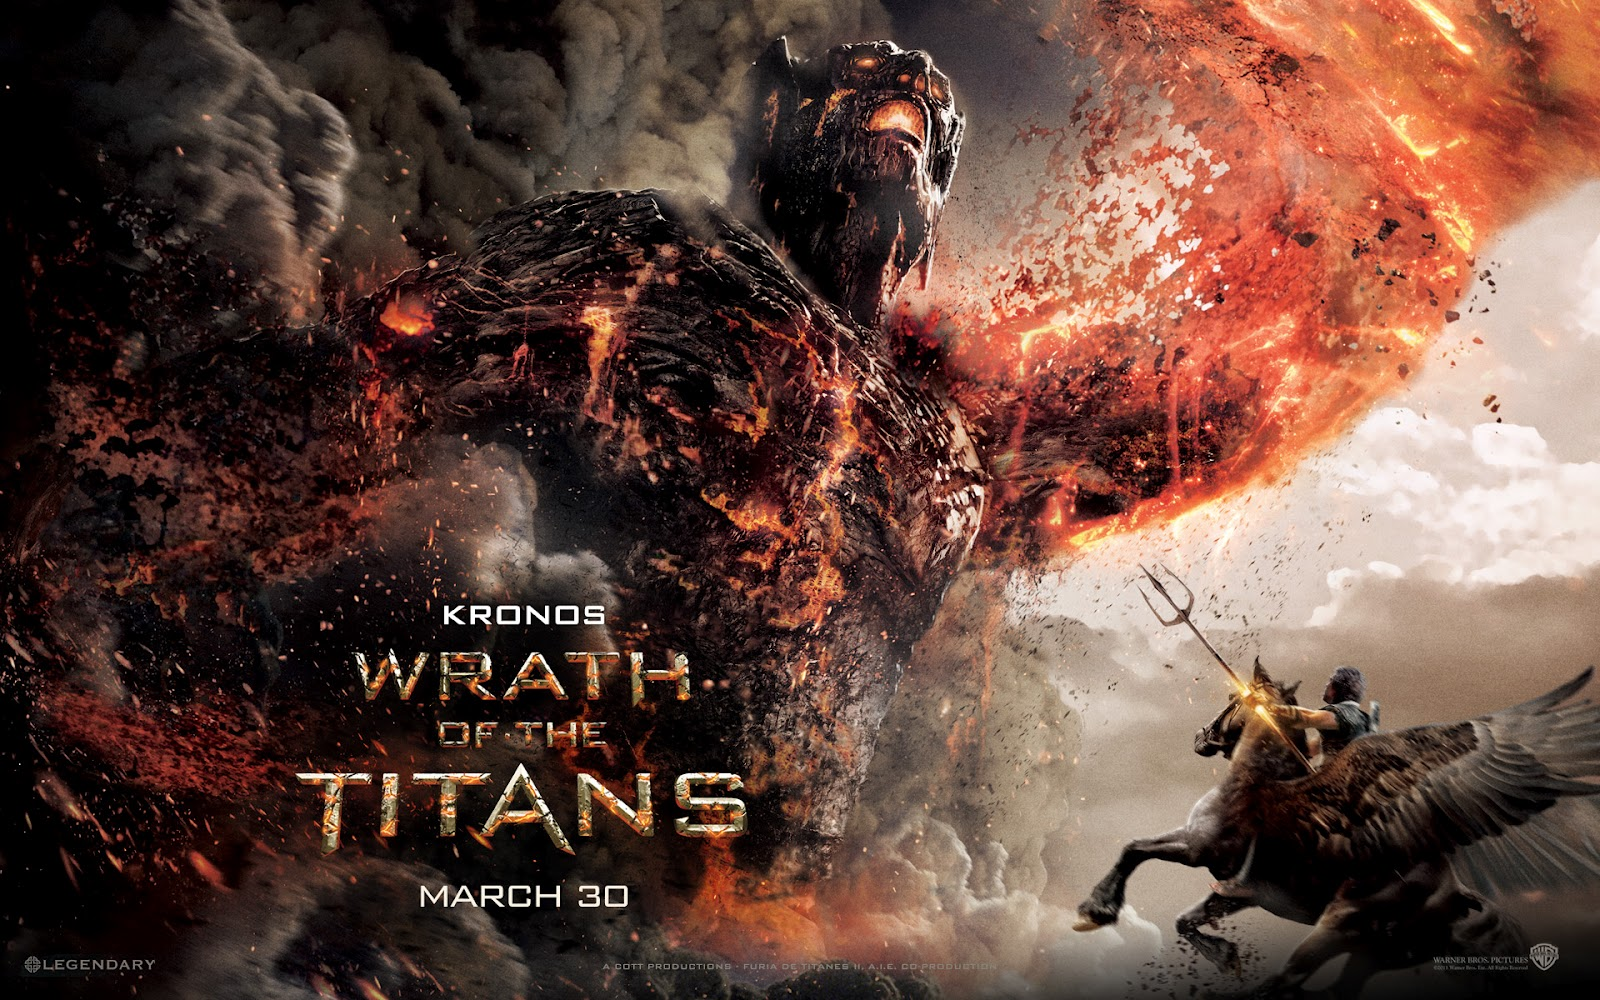 http://2.bp.blogspot.com/-7ZCTLM-n8to/T48CAdyxssI/AAAAAAAABfo/Vc3zLZhEclI/s1600/Wrath_of_the_Titans_Wallpaper_12_1280.jpg